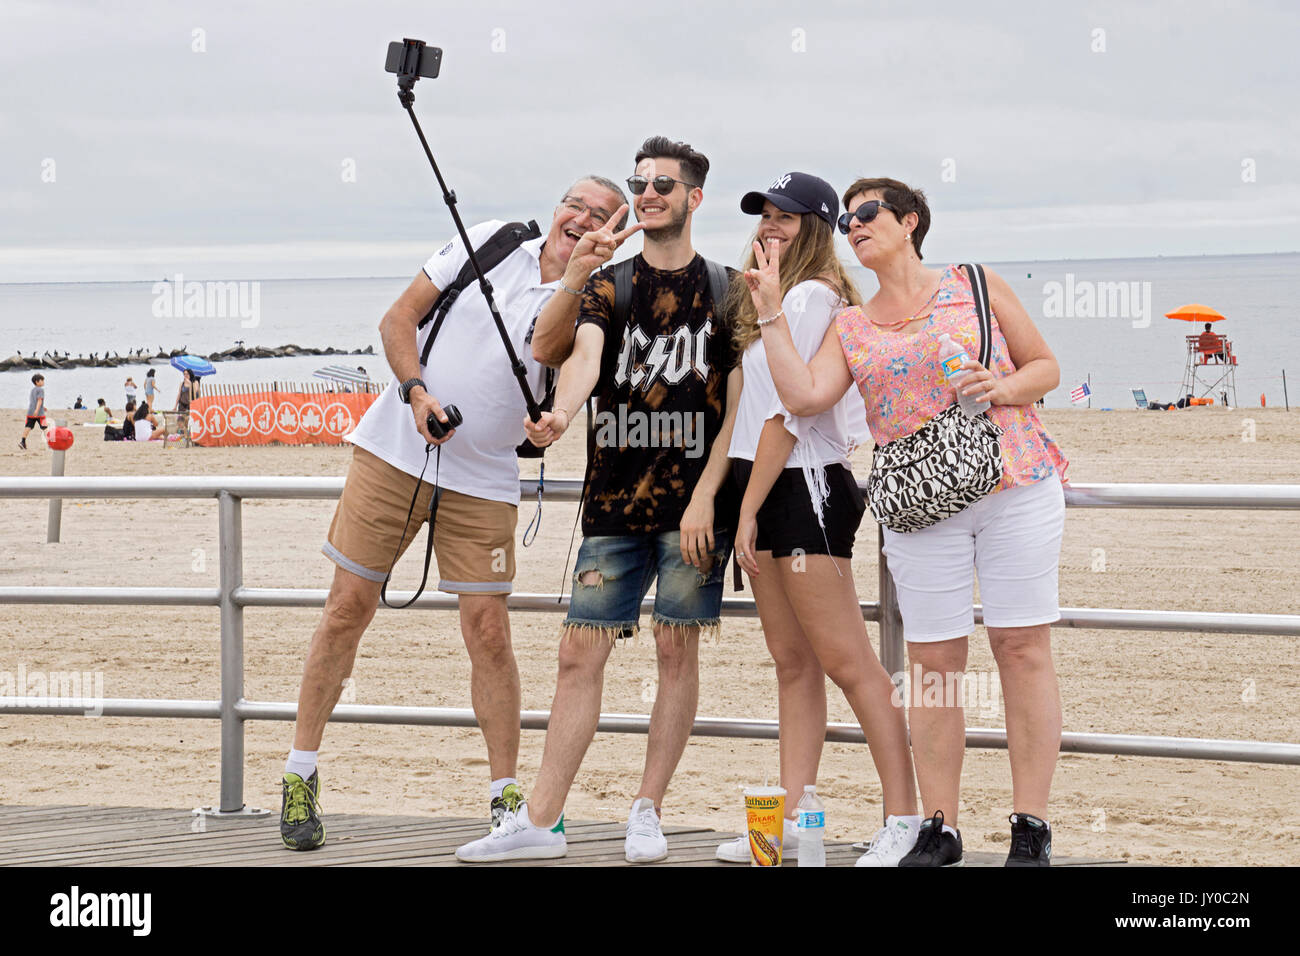 A tourist family visiting Coney Island in Brooklyn take a selfie on the boardwalk facing the Atlantic Ocean. - Stock Image